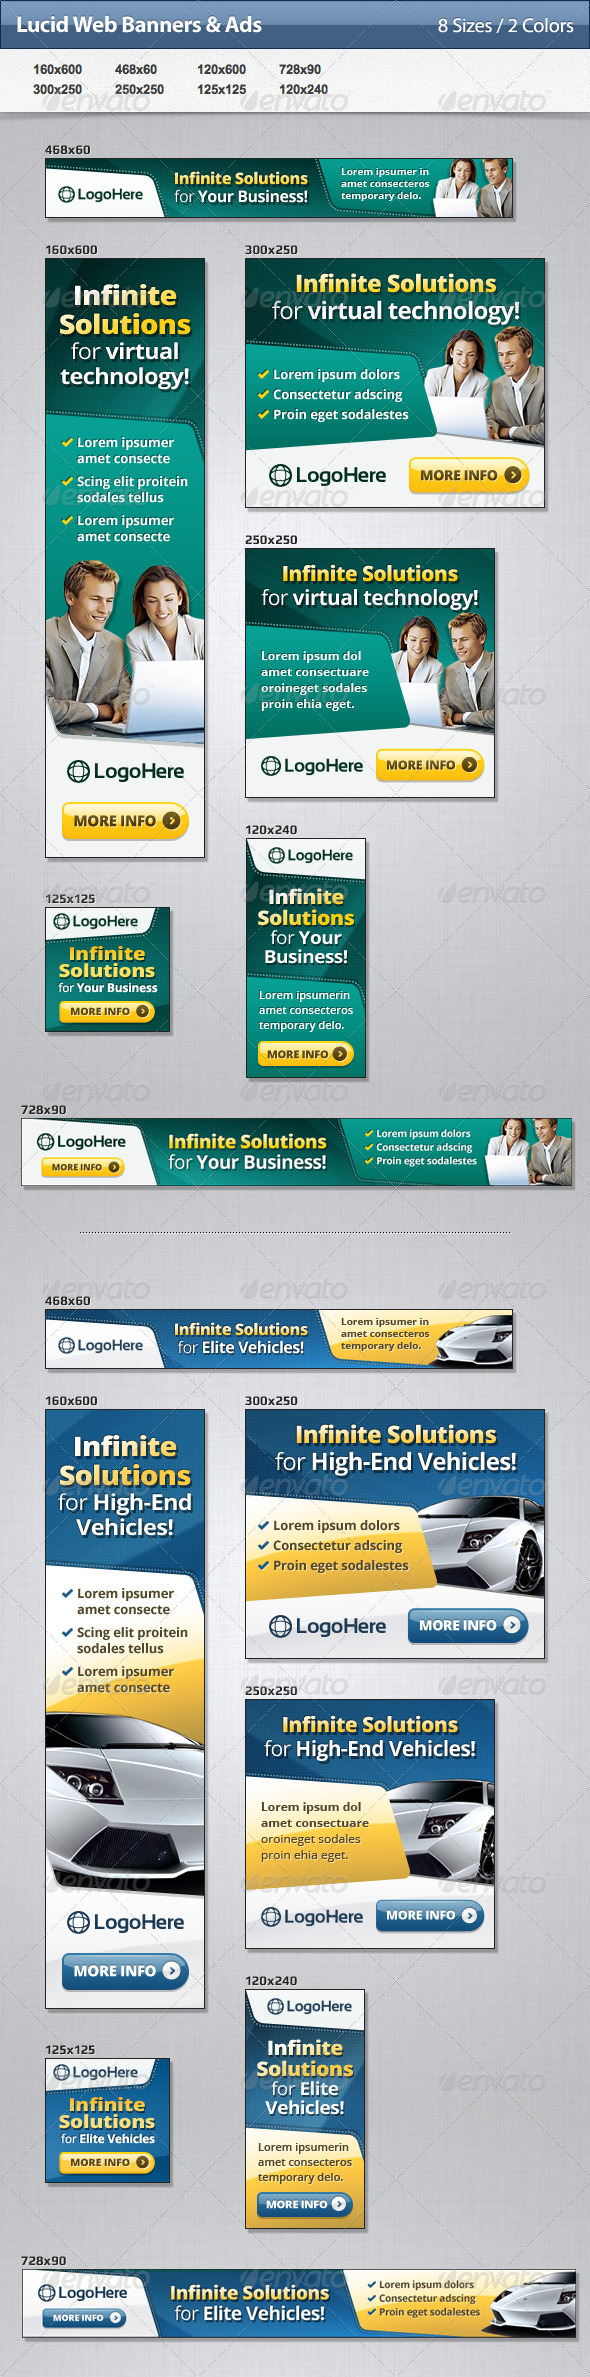 GraphicRiver Lucid Web Banners & Ads 4731334